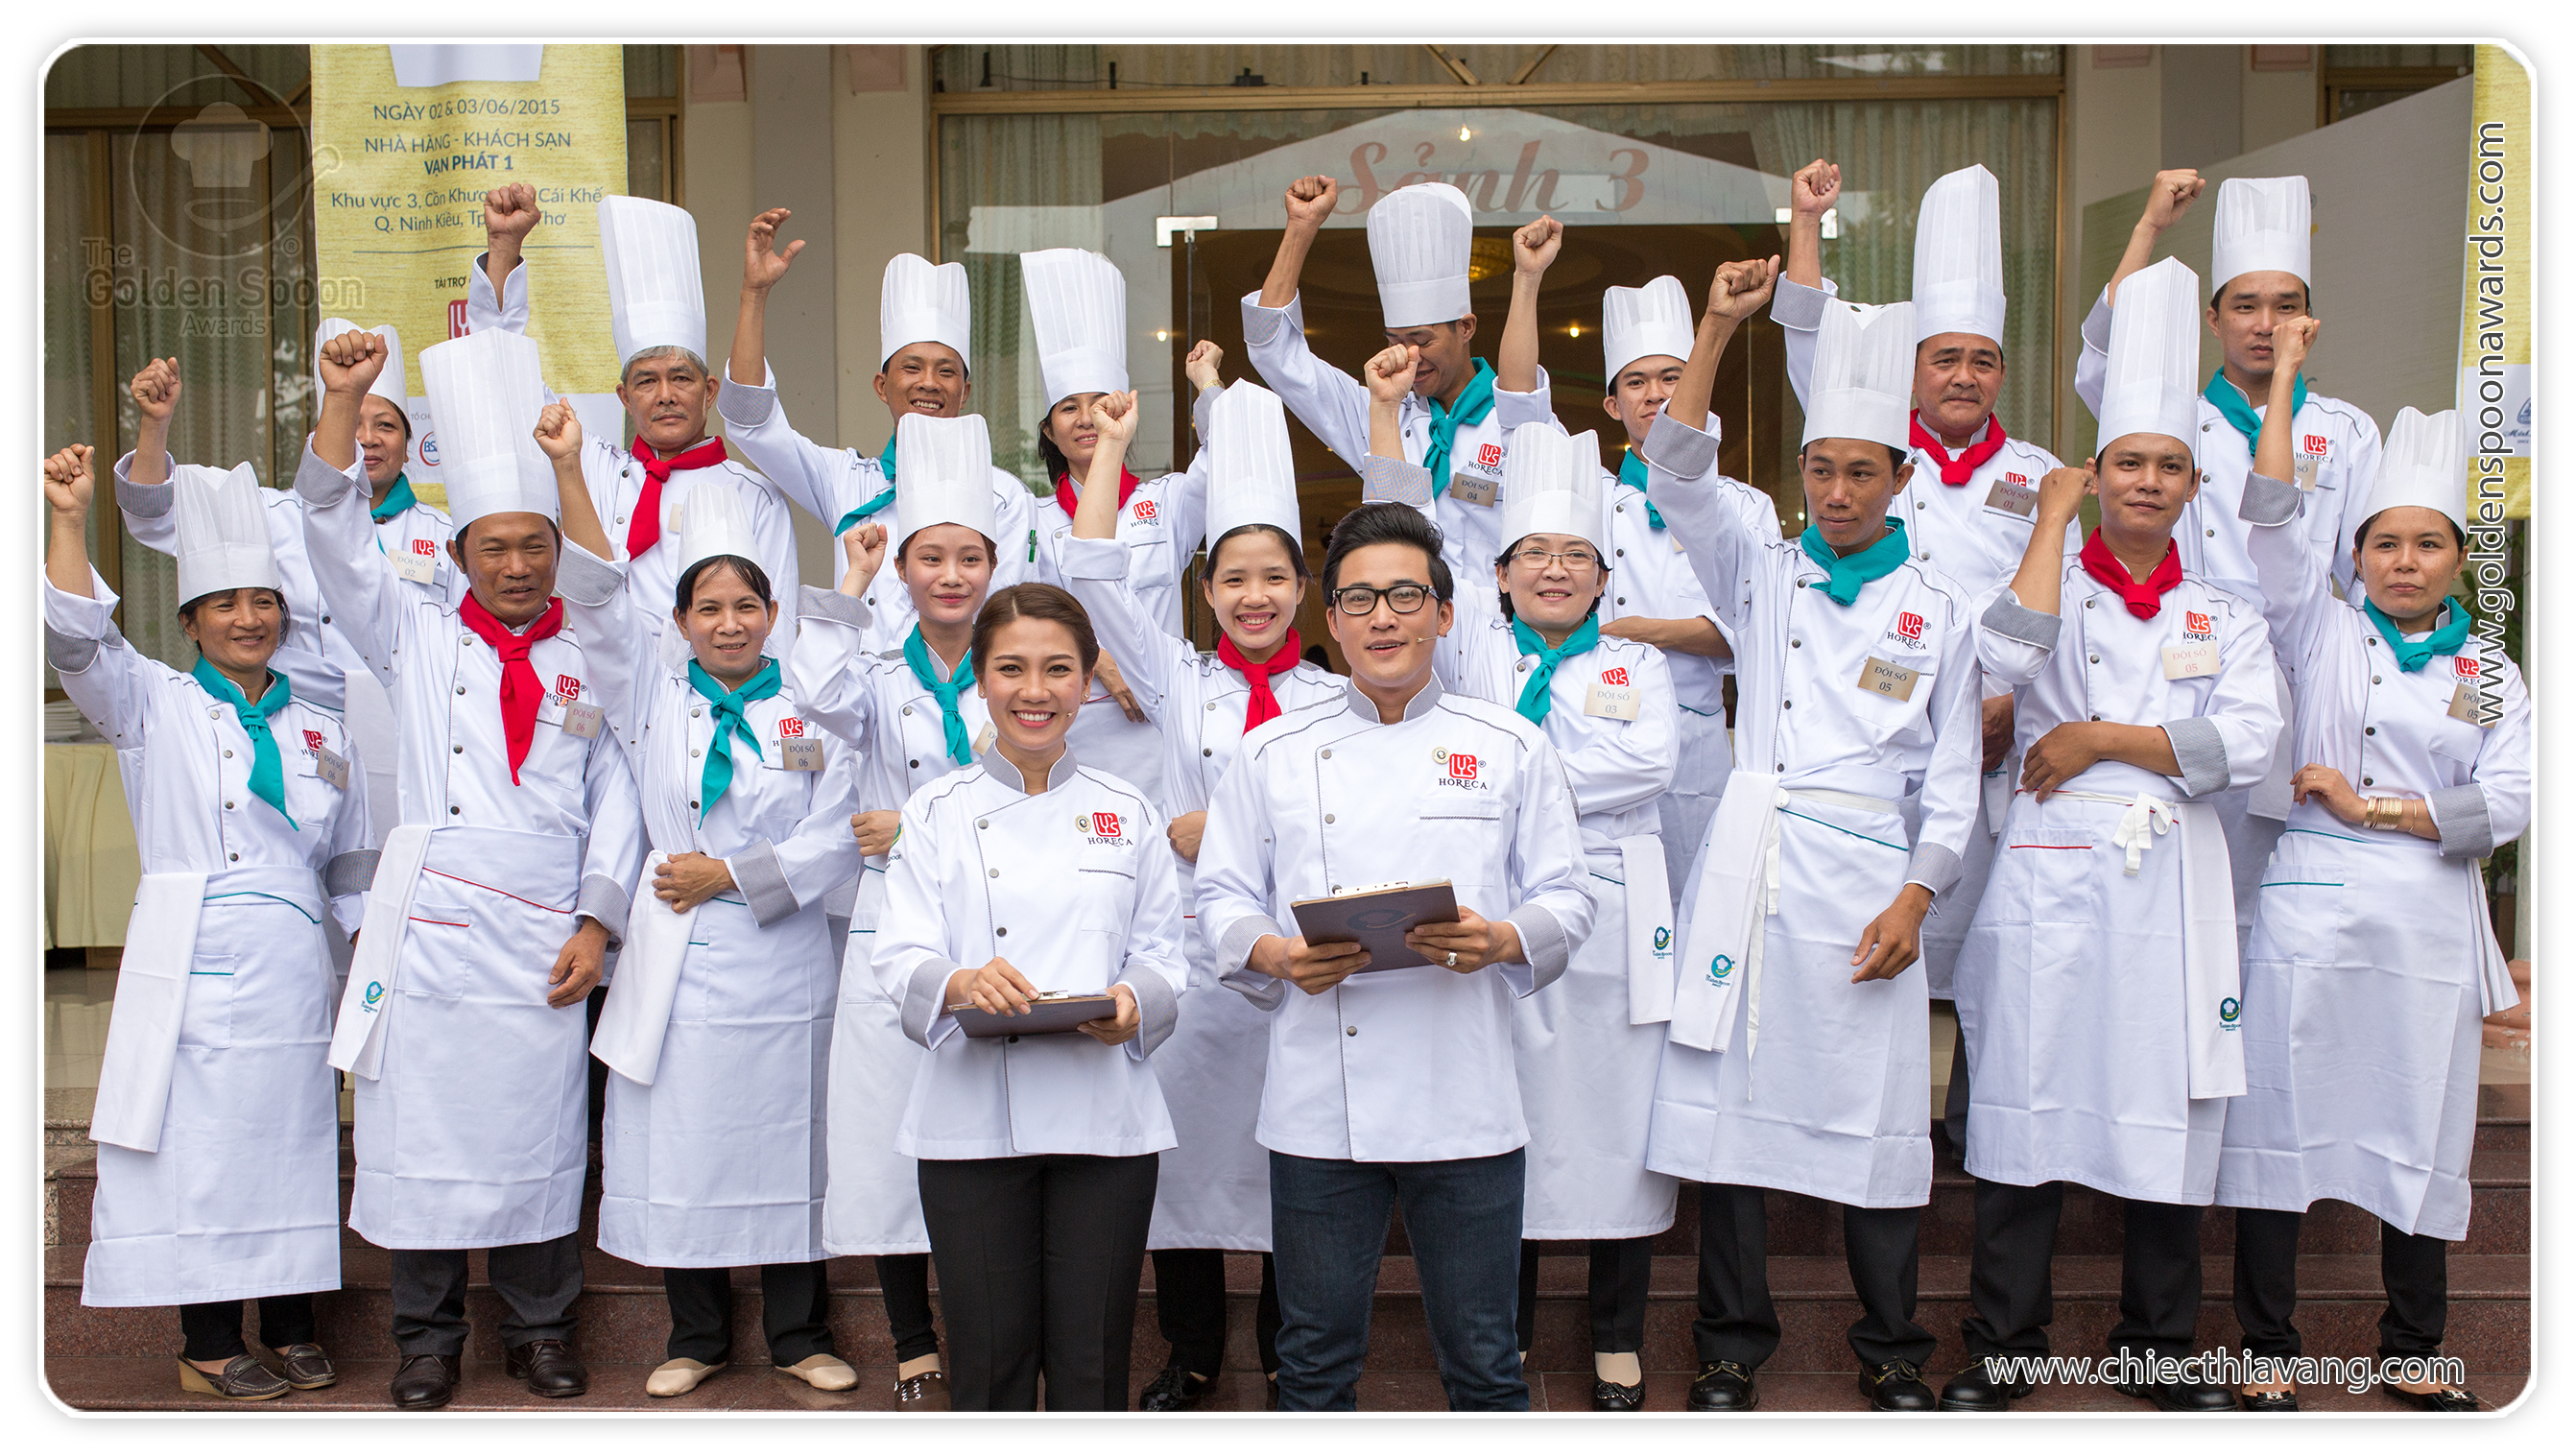 Exciting times at the 2015 Golden Spoon contest, Mekong Delta